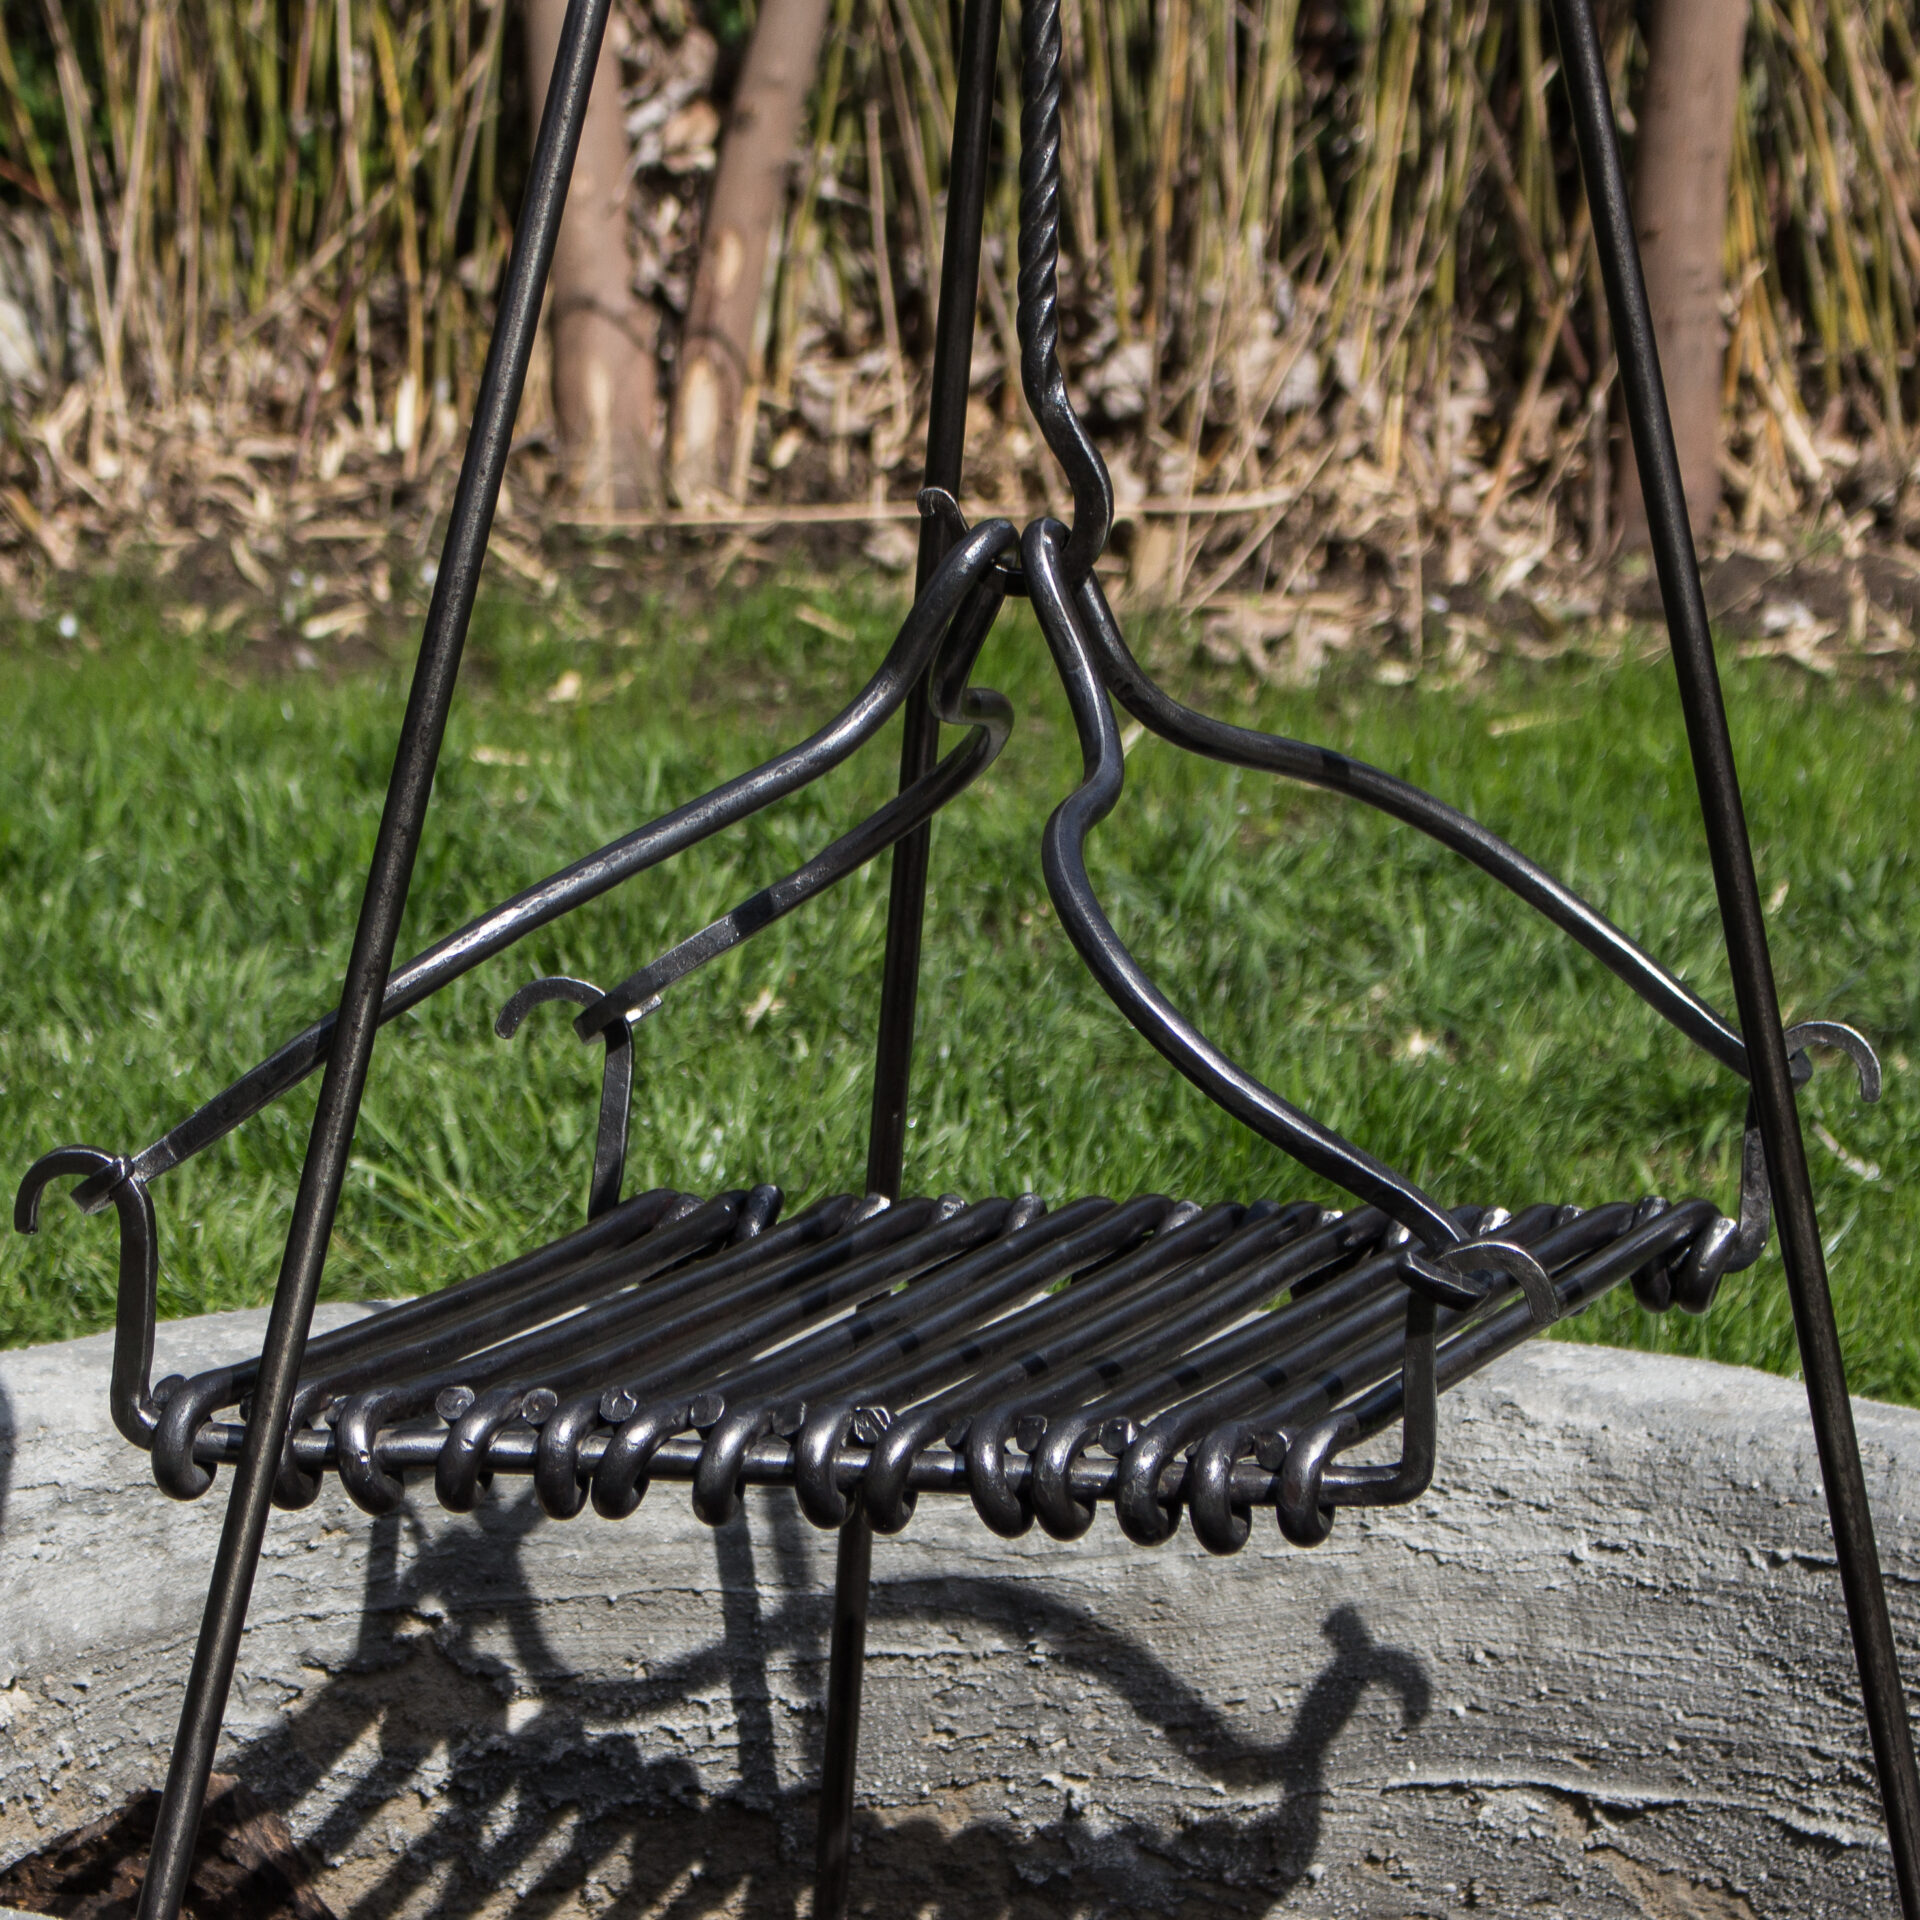 Hand Forged - Grillrost